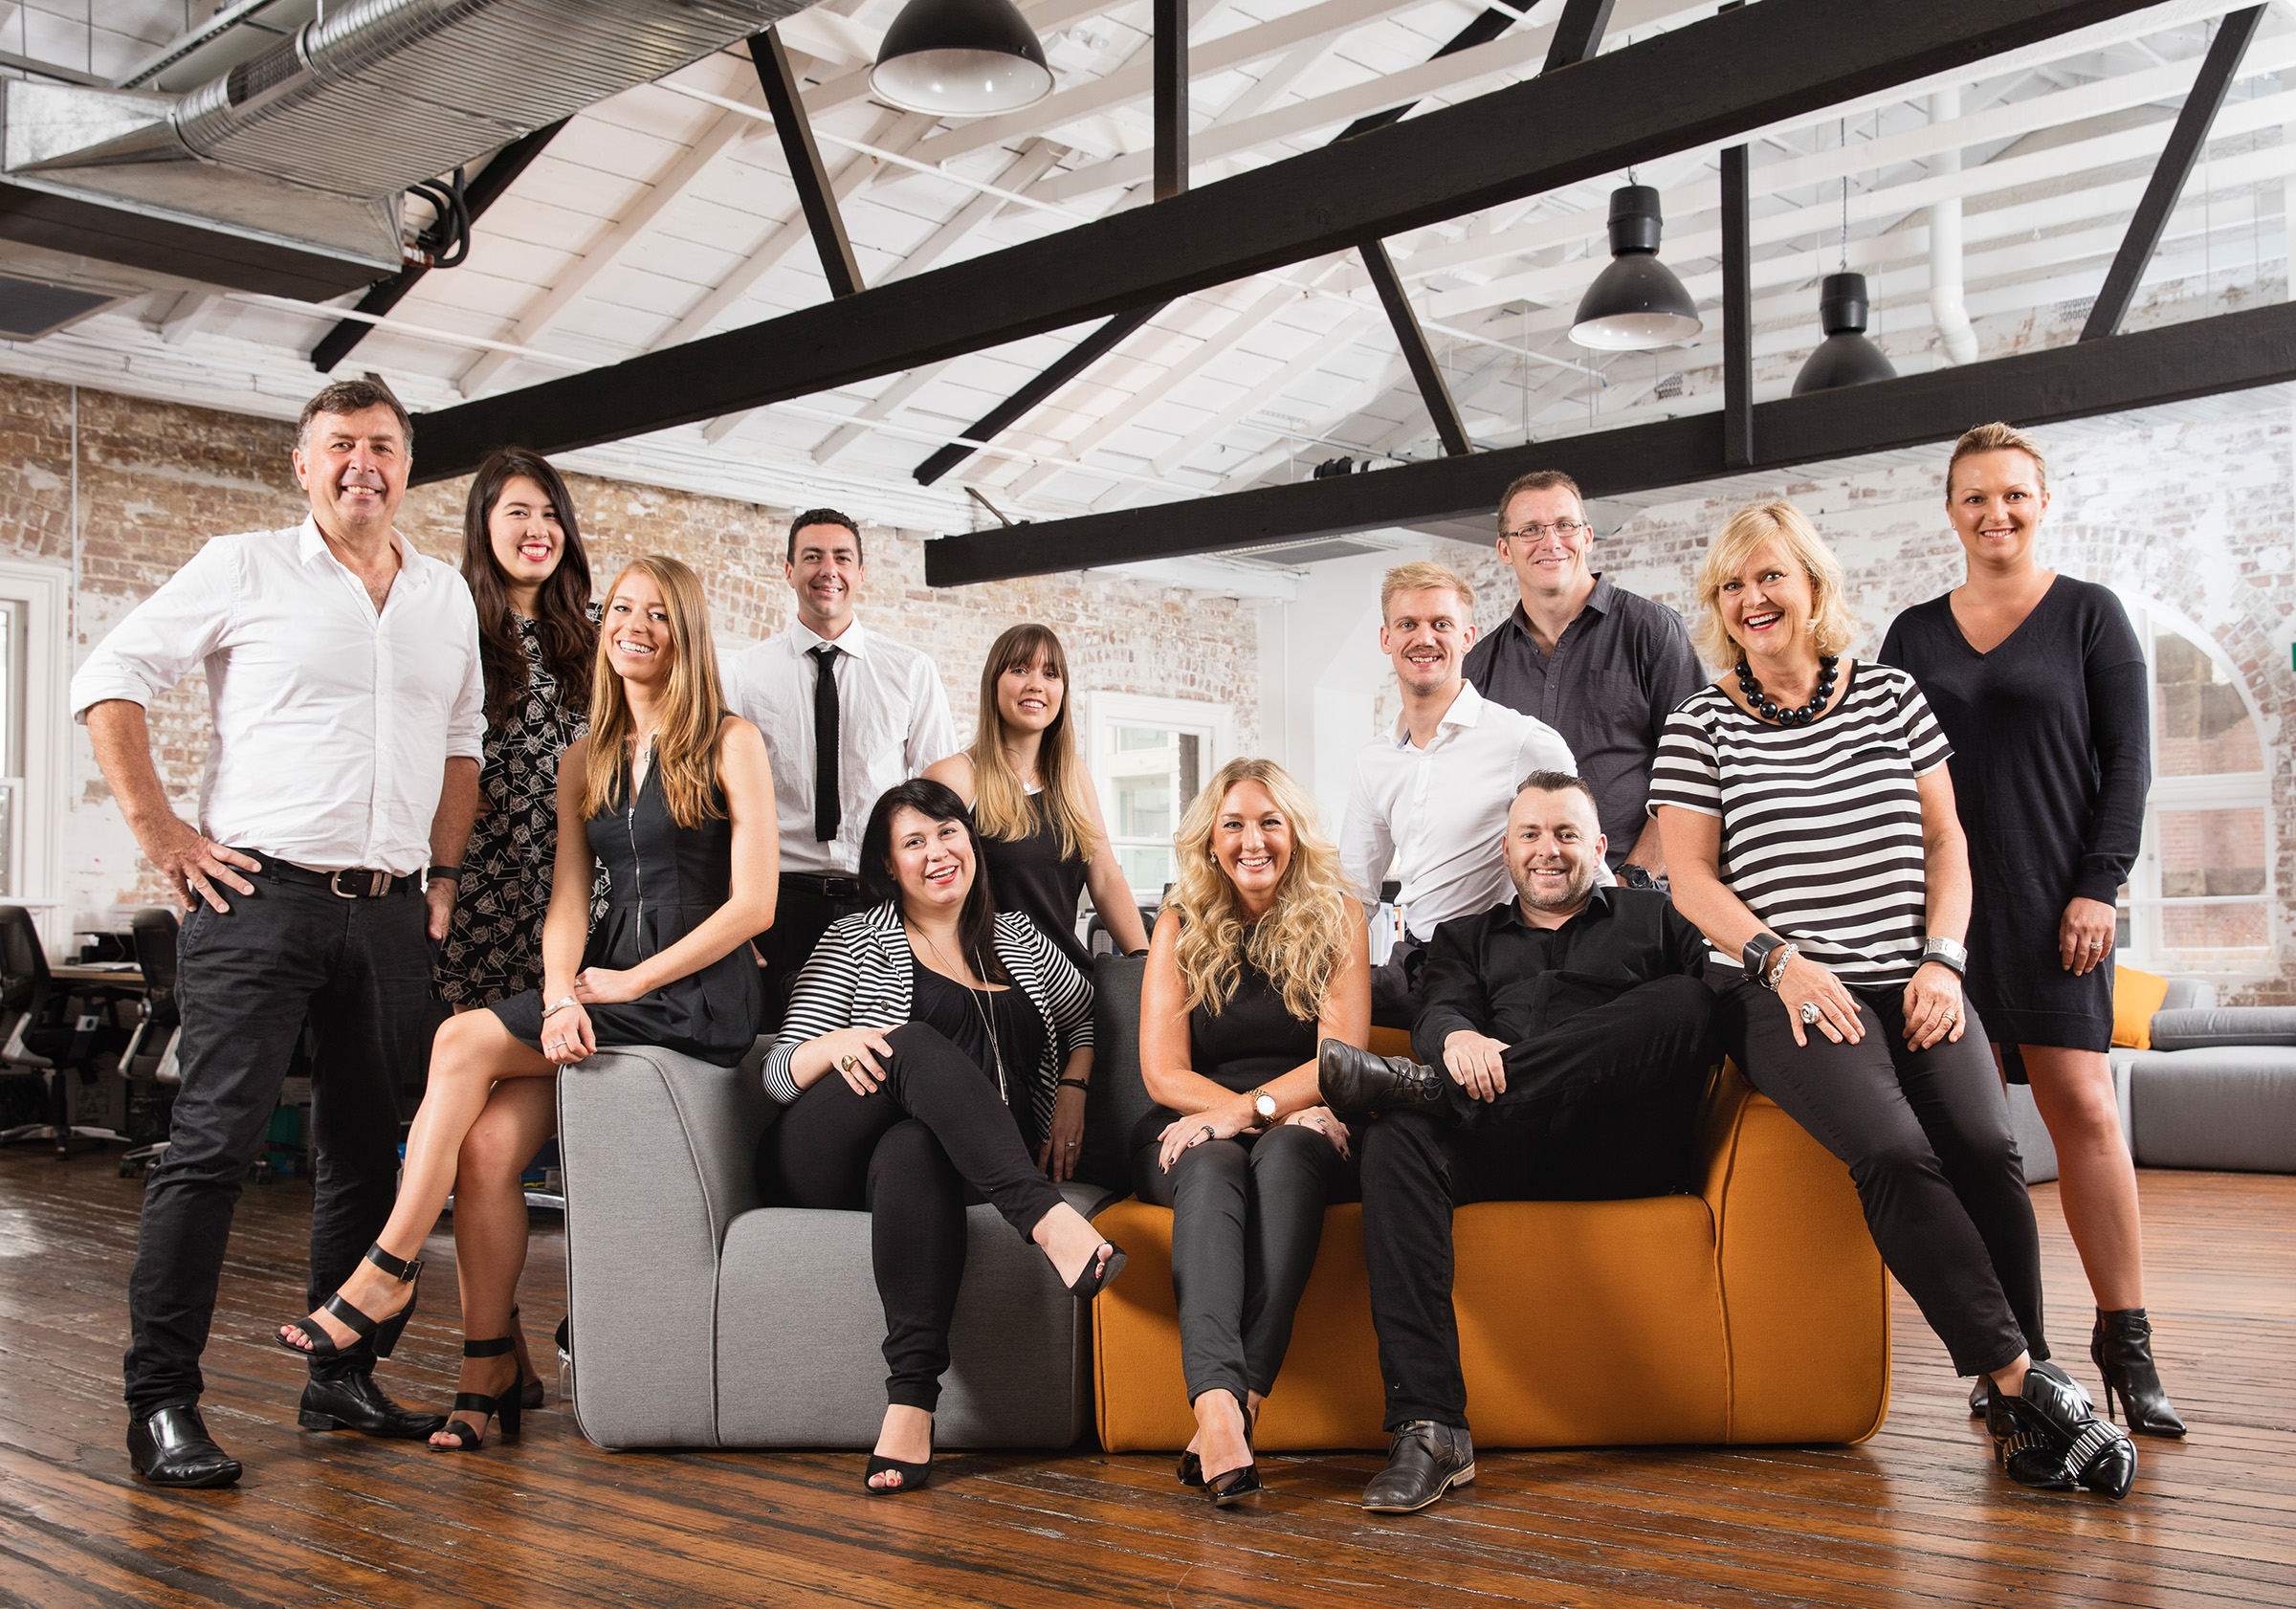 Creative staff group photography of 12 people seated and standing in a contemporary industrial office